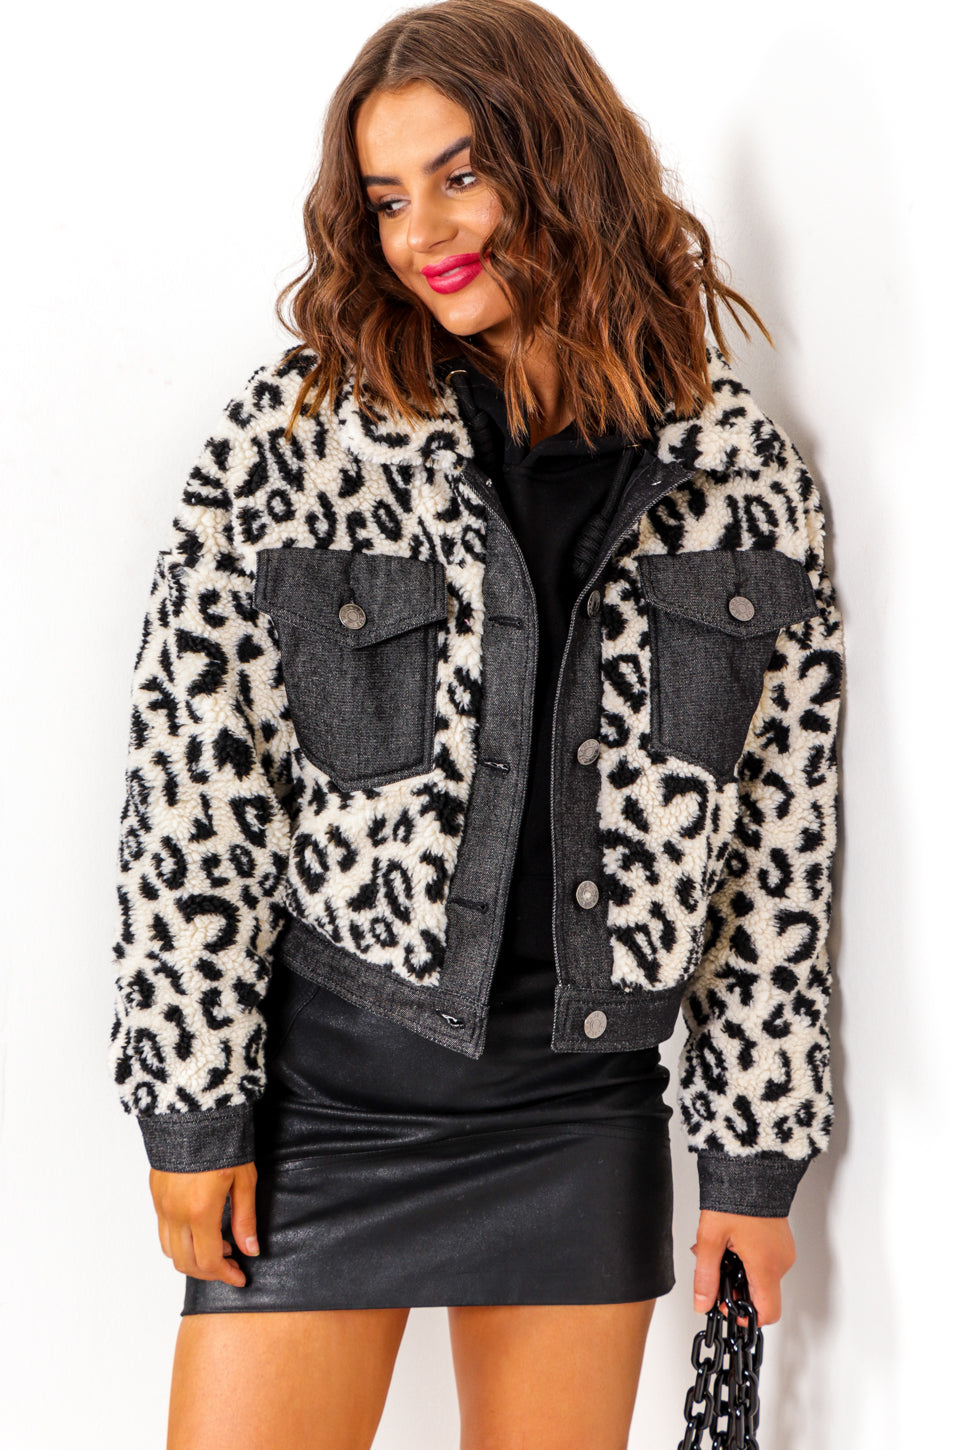 Crop It - Cream Leopard Print Faux Fur Cropped Jacket